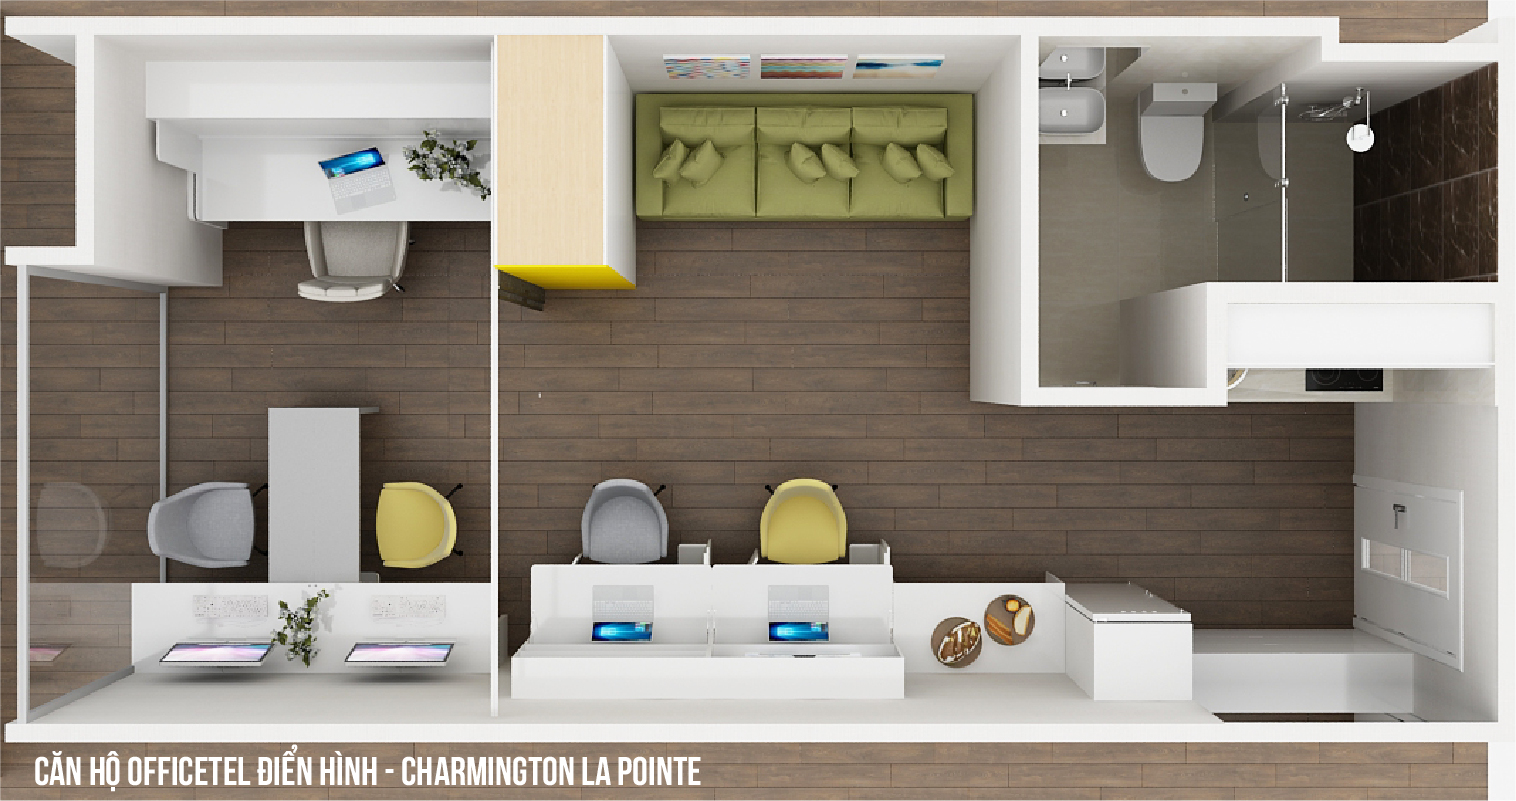 officetel charmington la pointe